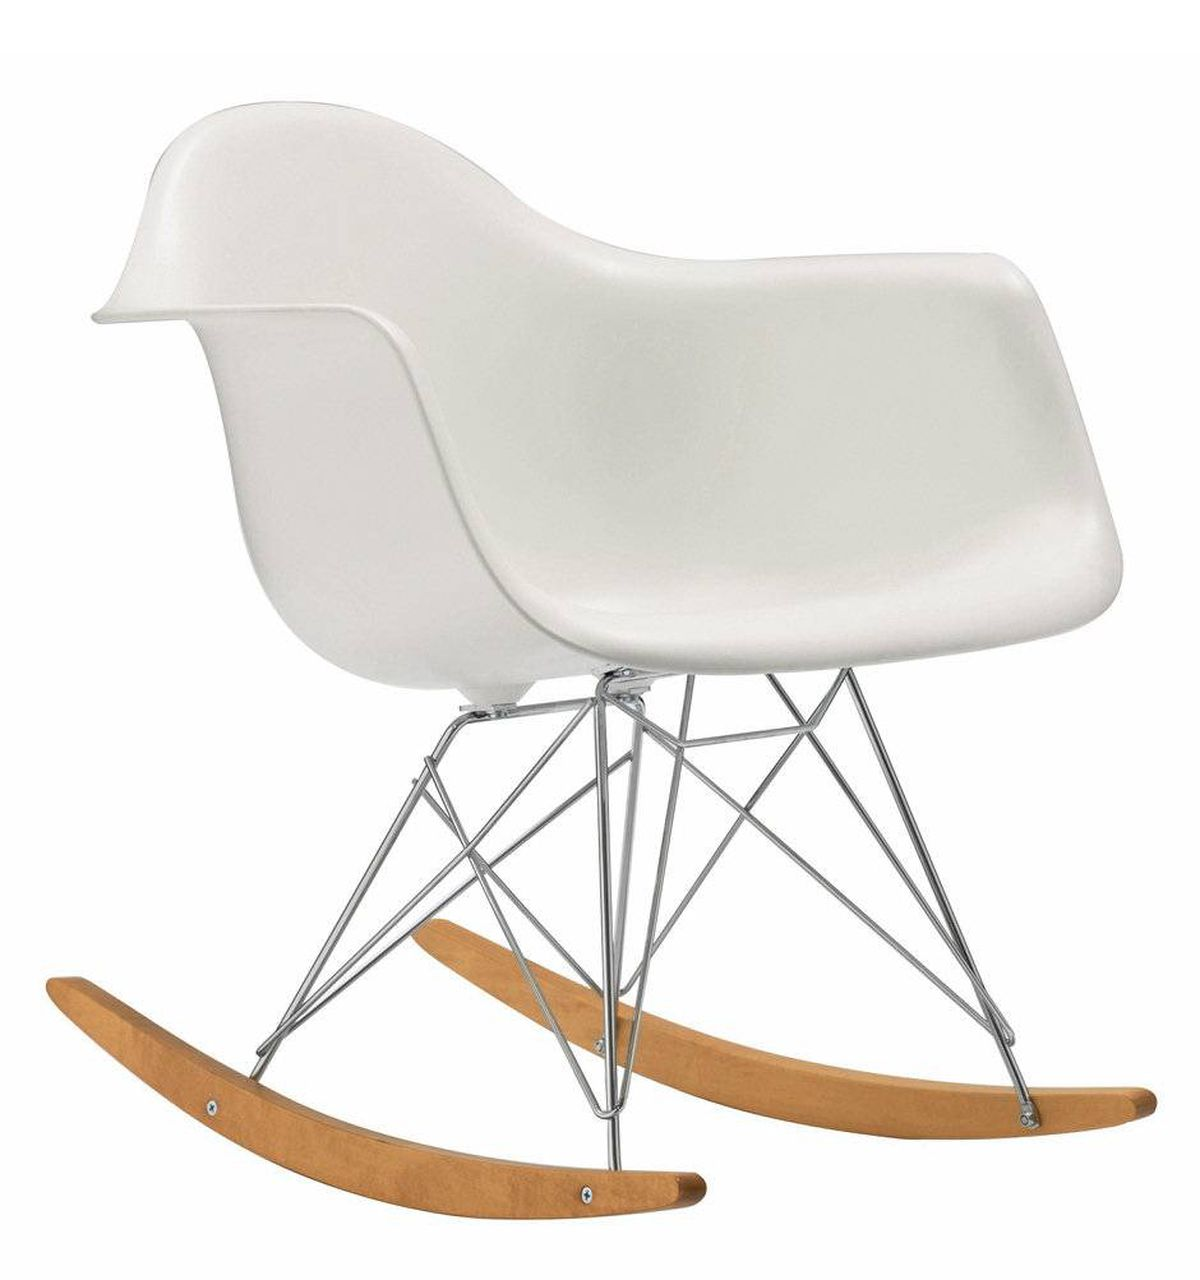 The Eames Molded Plastic Rocker features a deep, moulded shell composed of eco-friendly polypropylene, maple runners and the iconic Eames Eiffel base. $479 at Design Within Reach (www.dwr.com).